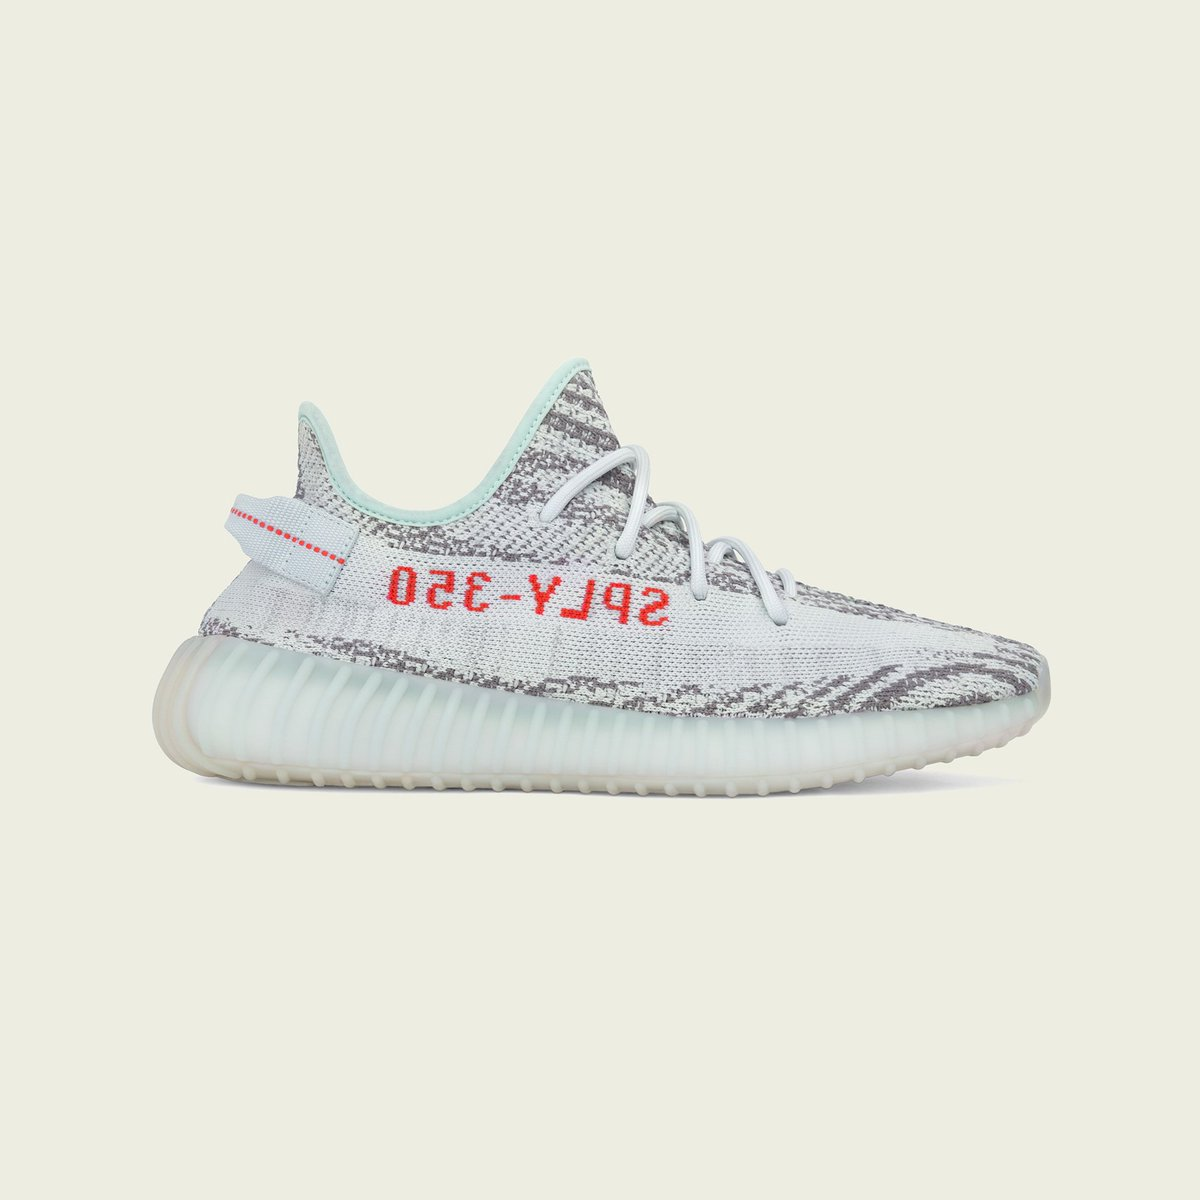 463a414ffdd3a ... UV Light Test Yeezy Boost 350 V2 Zebra From gogoyeezy.net. 1 reply 9  retweets 76 likes